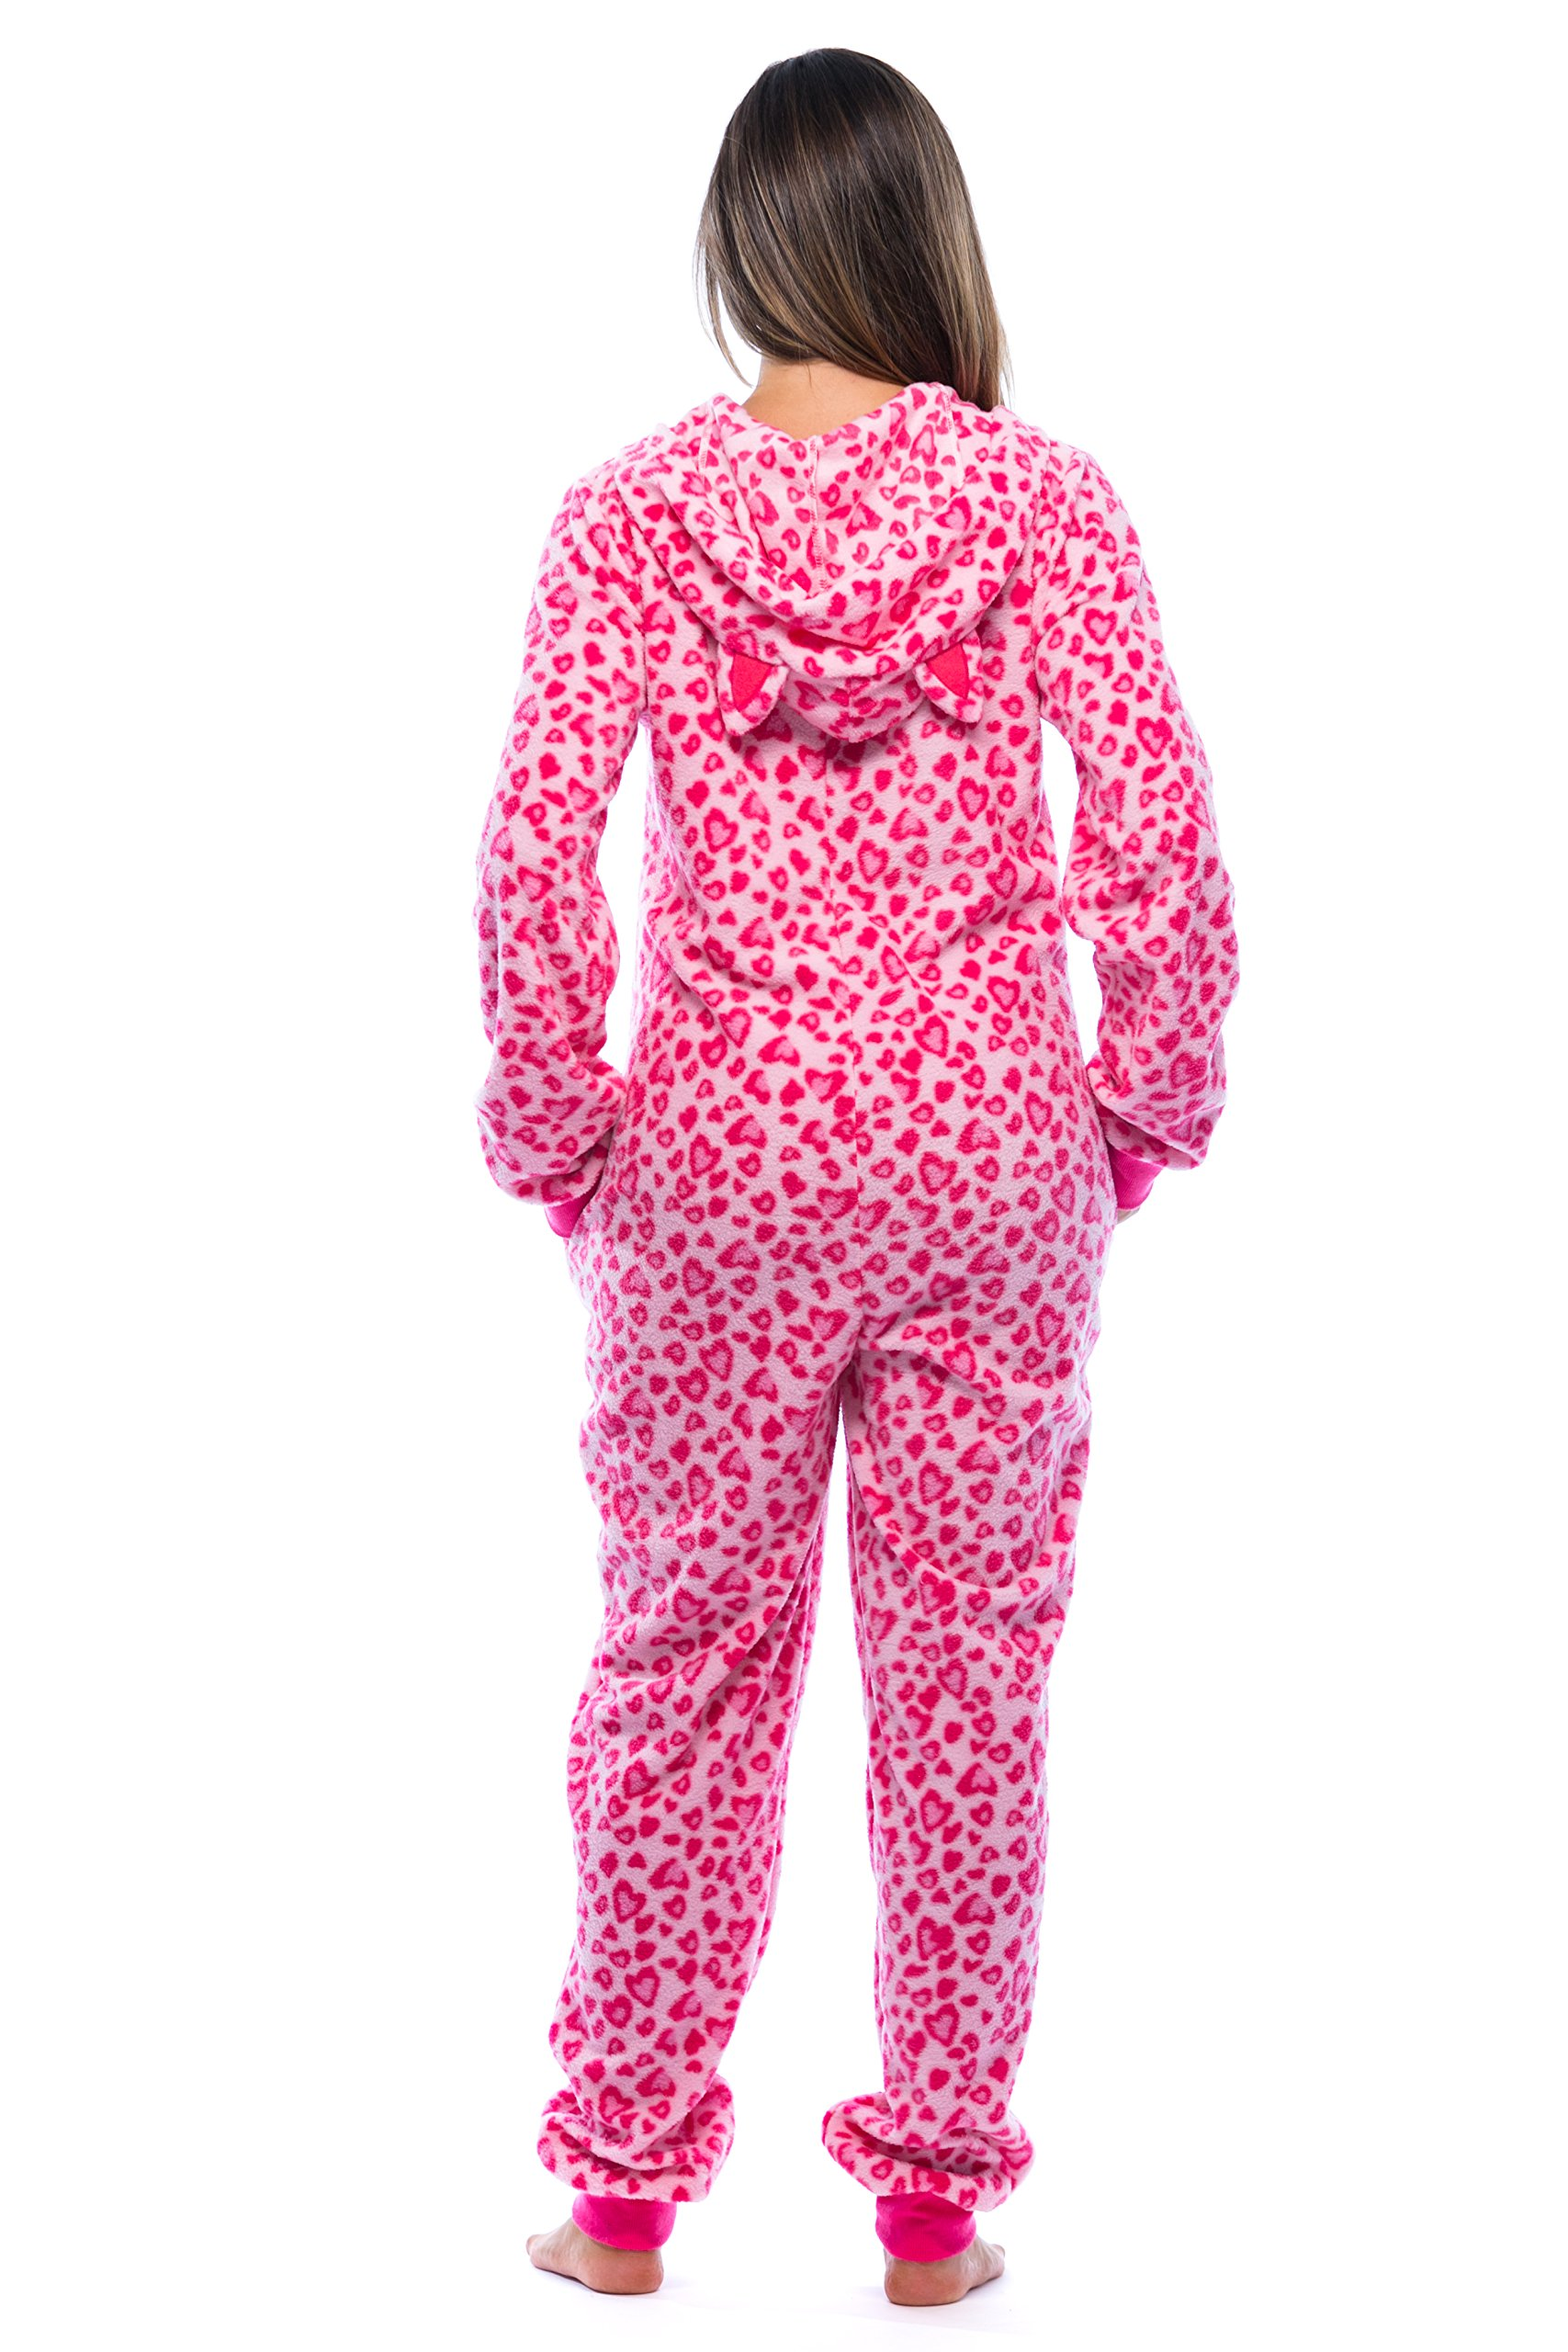 Just Love 6453-10215-M Adult Onesie With Animal Prints/Pajamas by Just Love (Image #3)